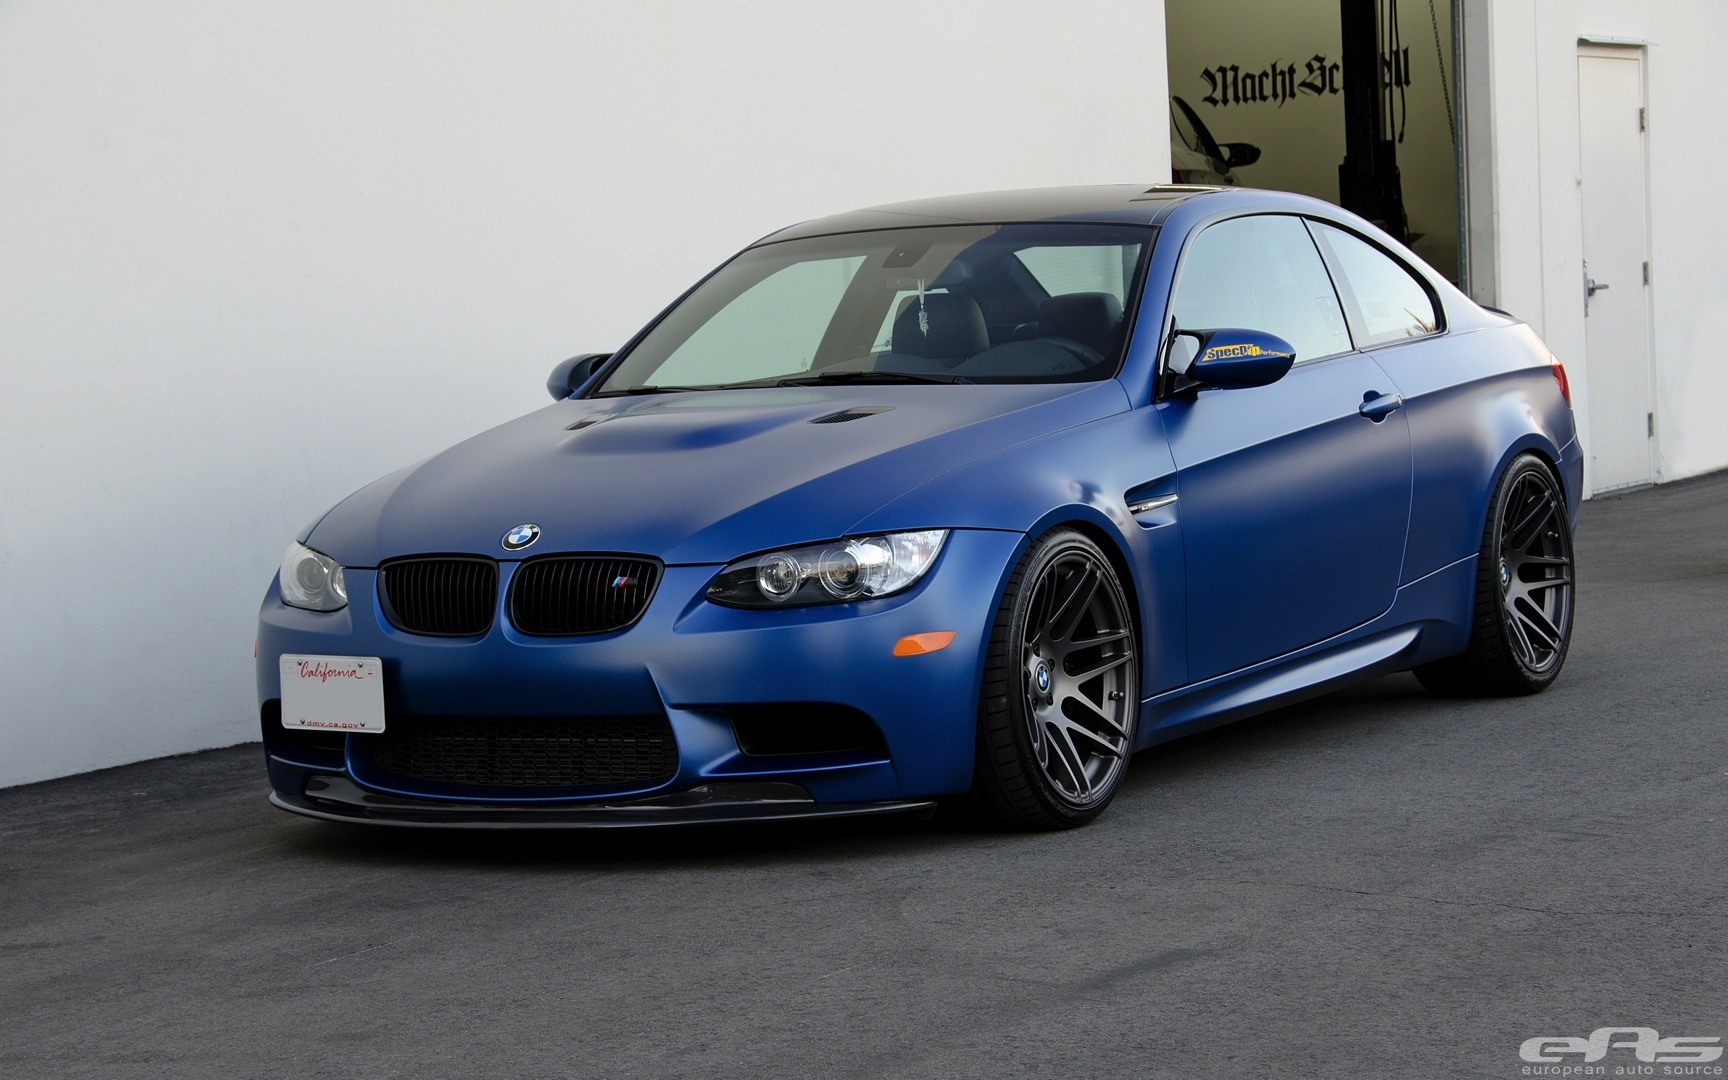 bmw e92 m3 gets mode carbon lip at eas. Black Bedroom Furniture Sets. Home Design Ideas